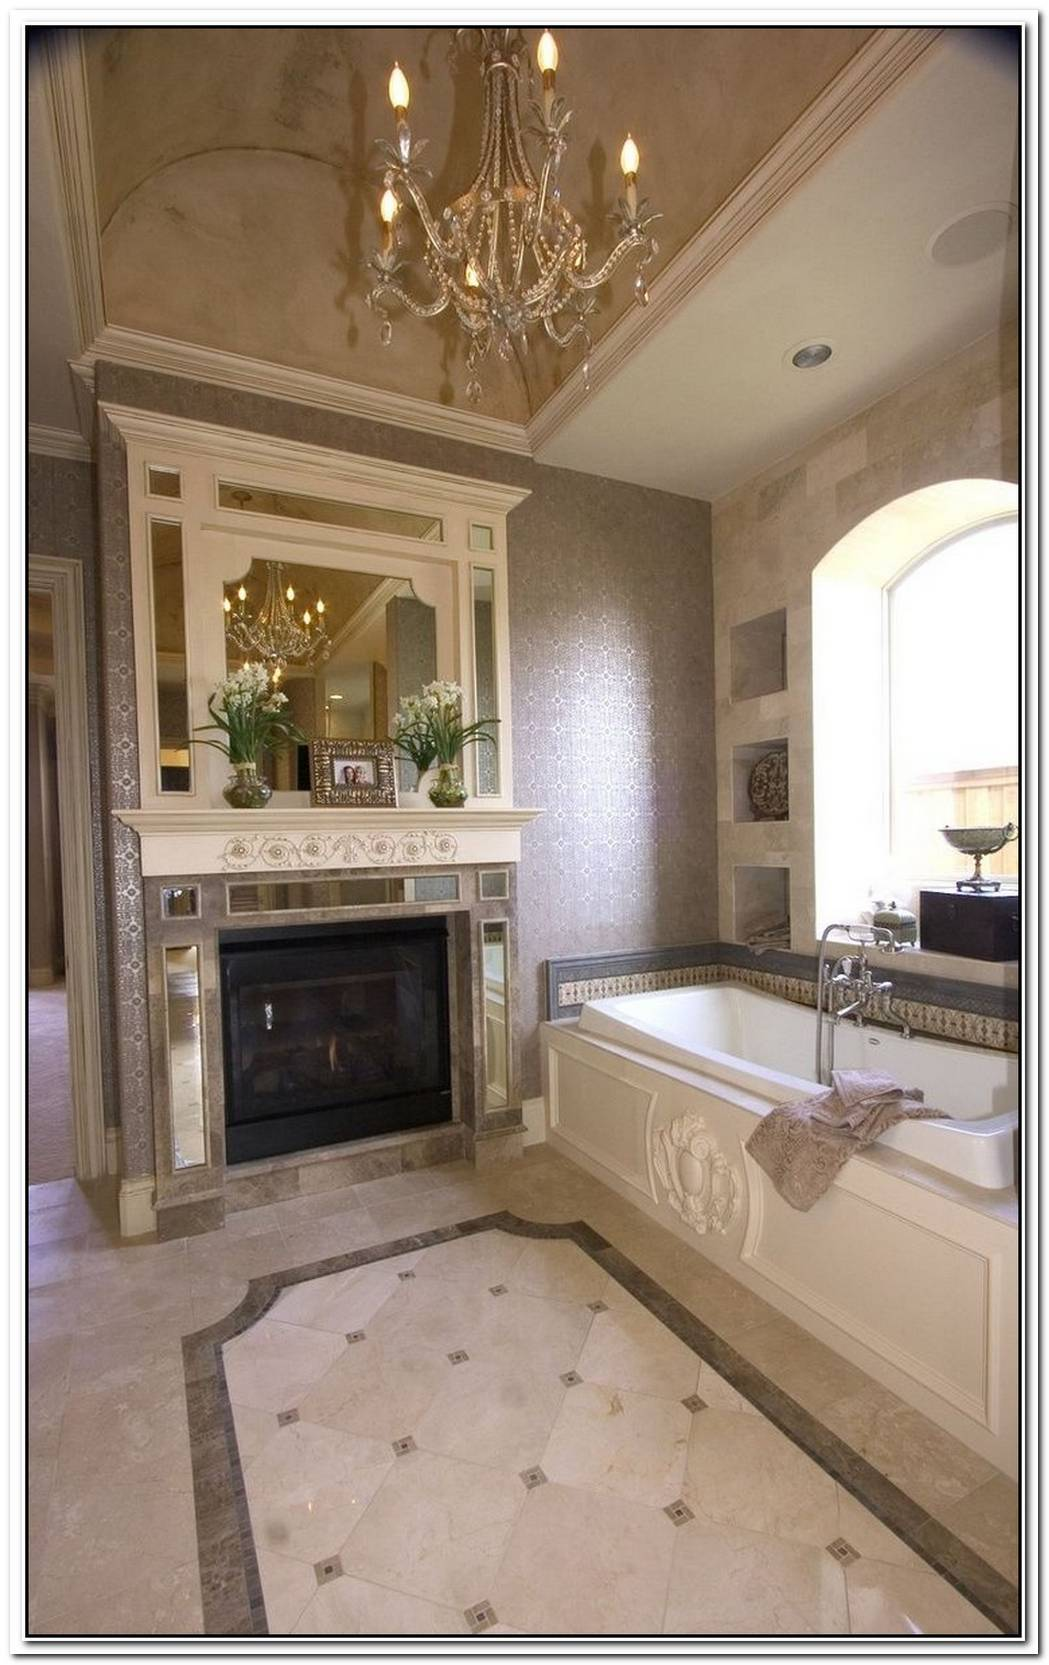 Luxury Classic Bathroom Design Idea